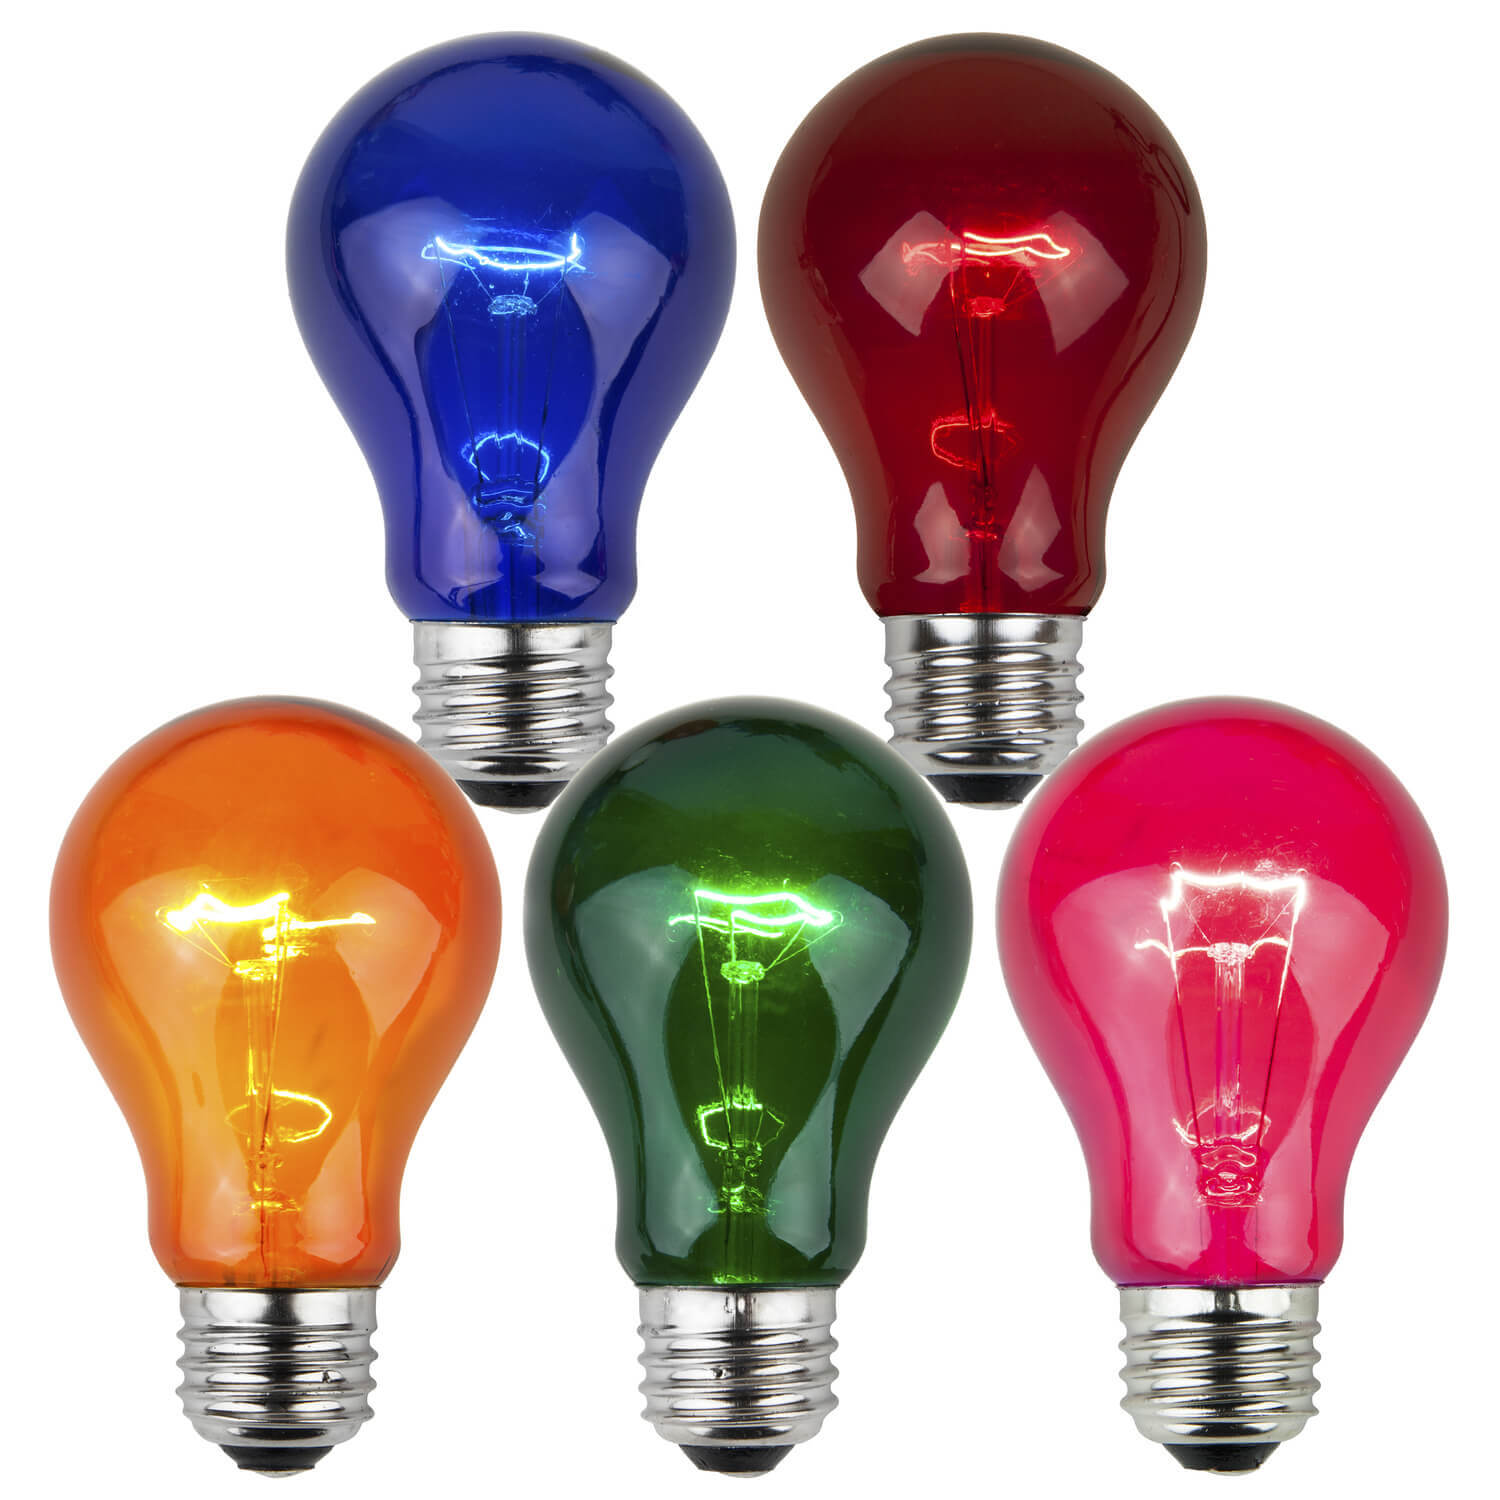 Multicolor-Transparent-A19-Bulbs-1